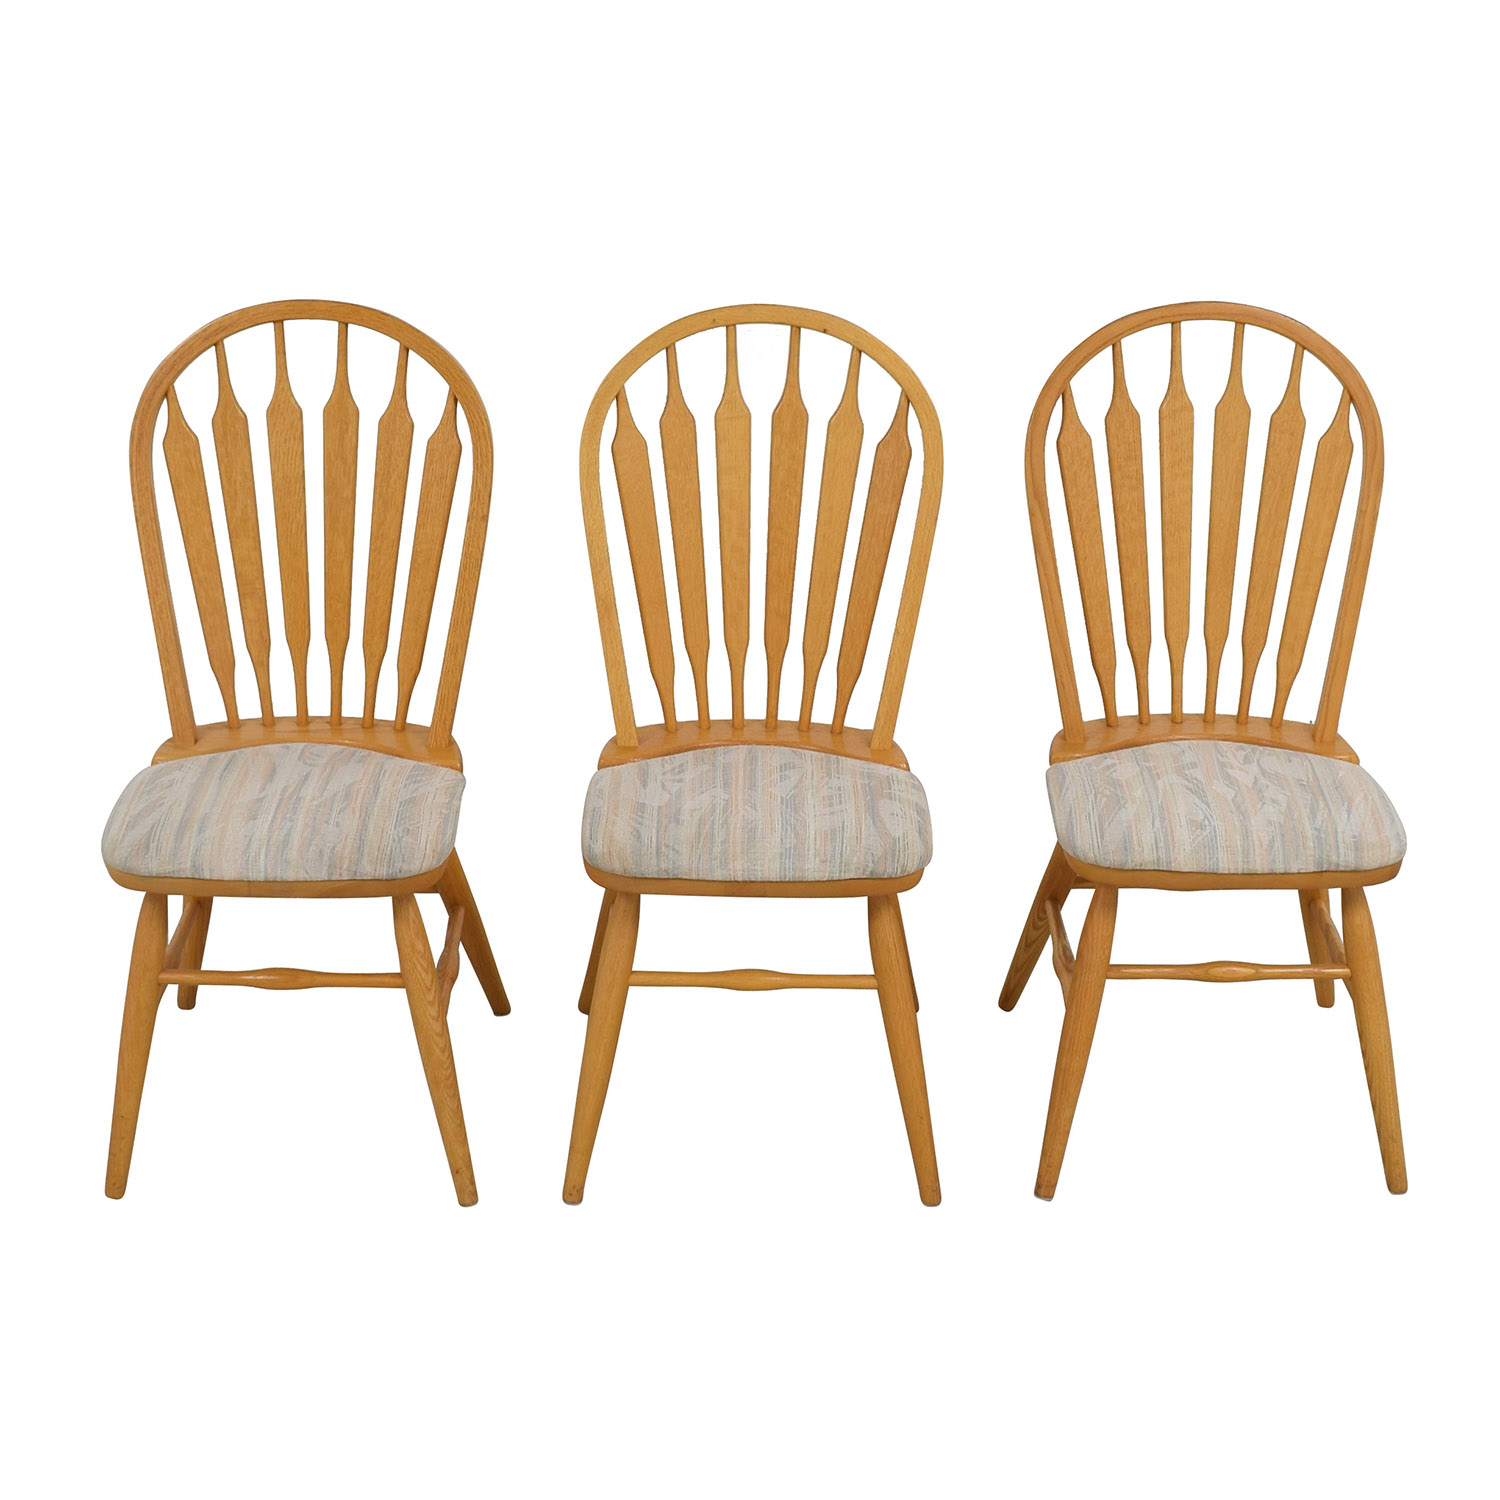 67 Off Dinaire Dinaire Kitchen Chairs With Cushions Chairs